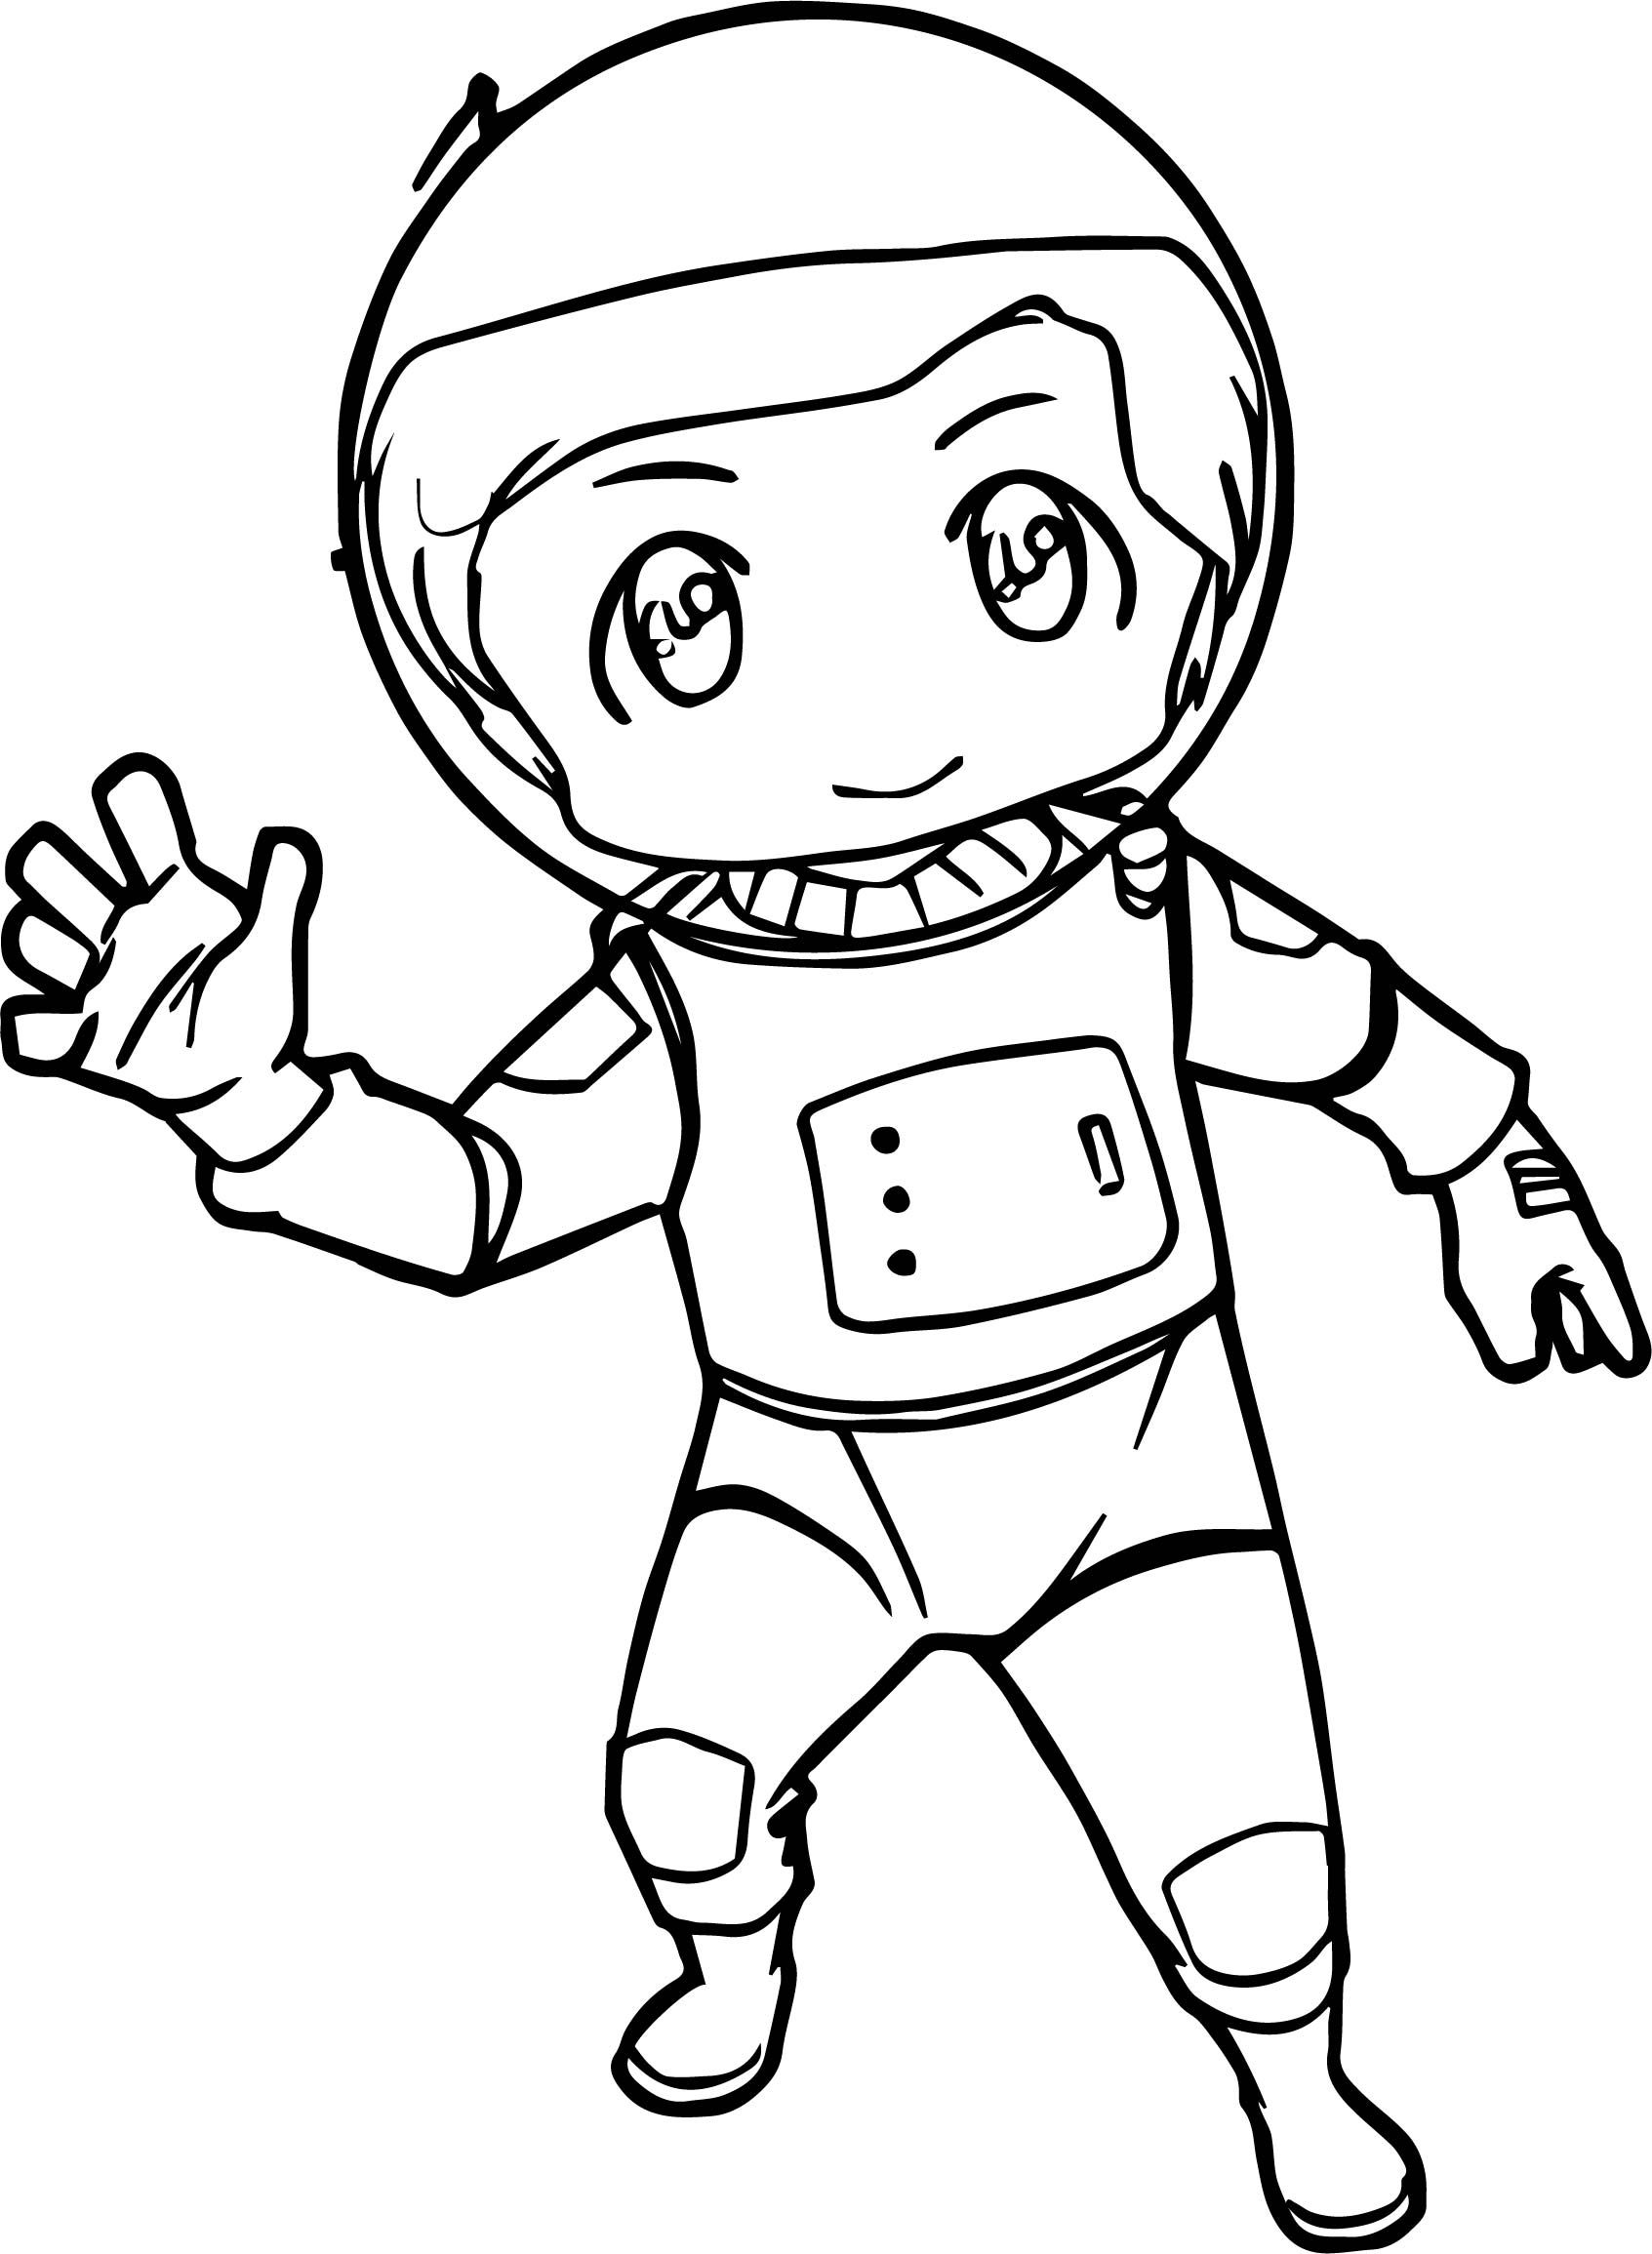 Chibi Kid Astronaut We Coloring Page   Astronaut drawing ...